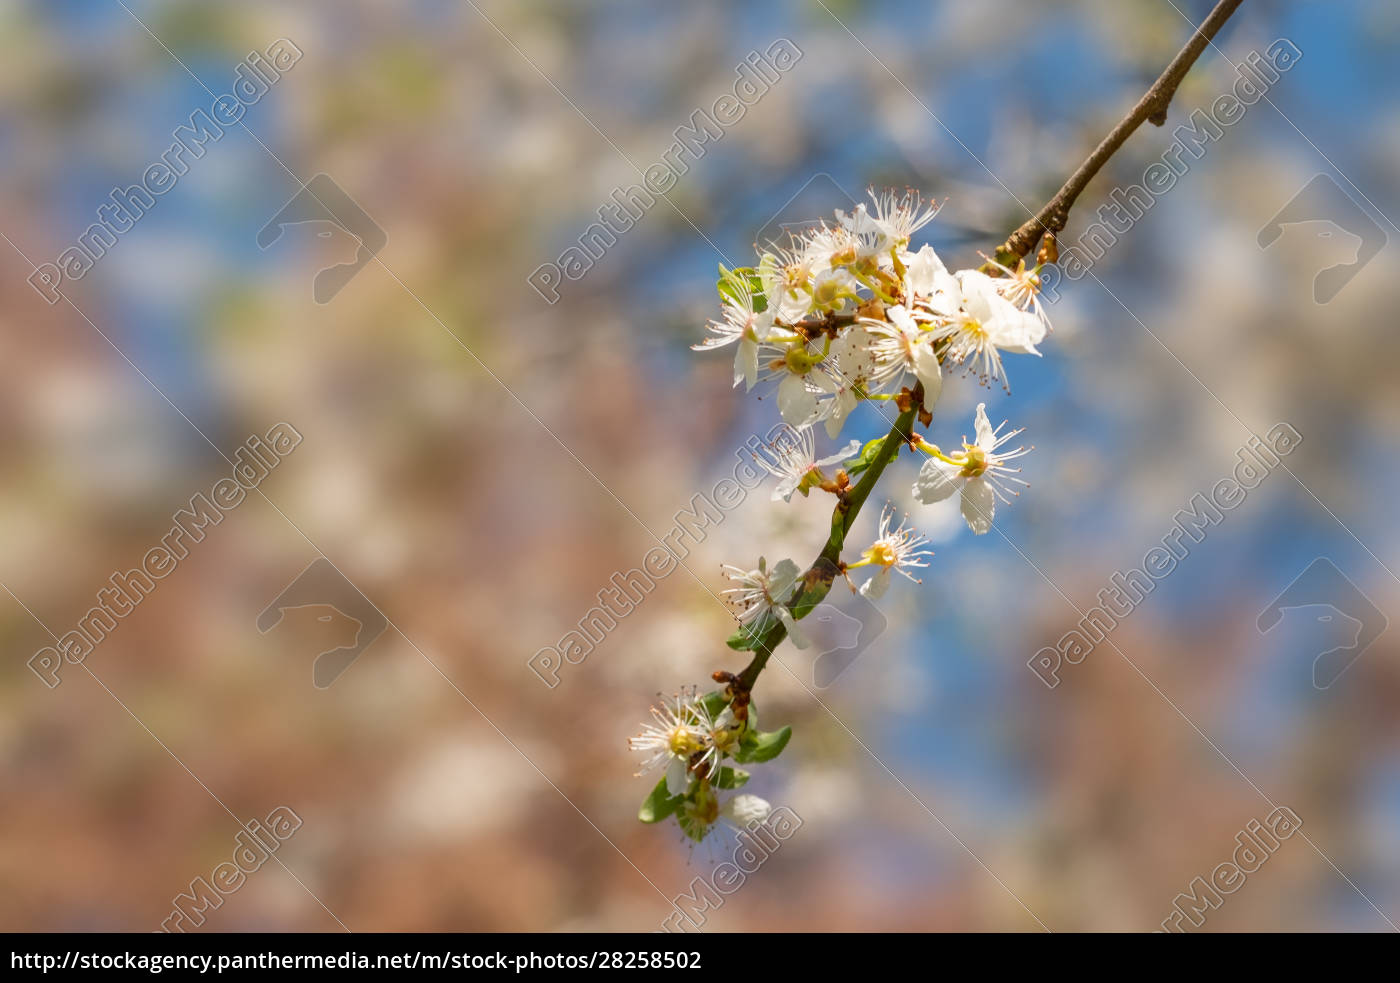 twig, with, white, flowers, in, spring - 28258502